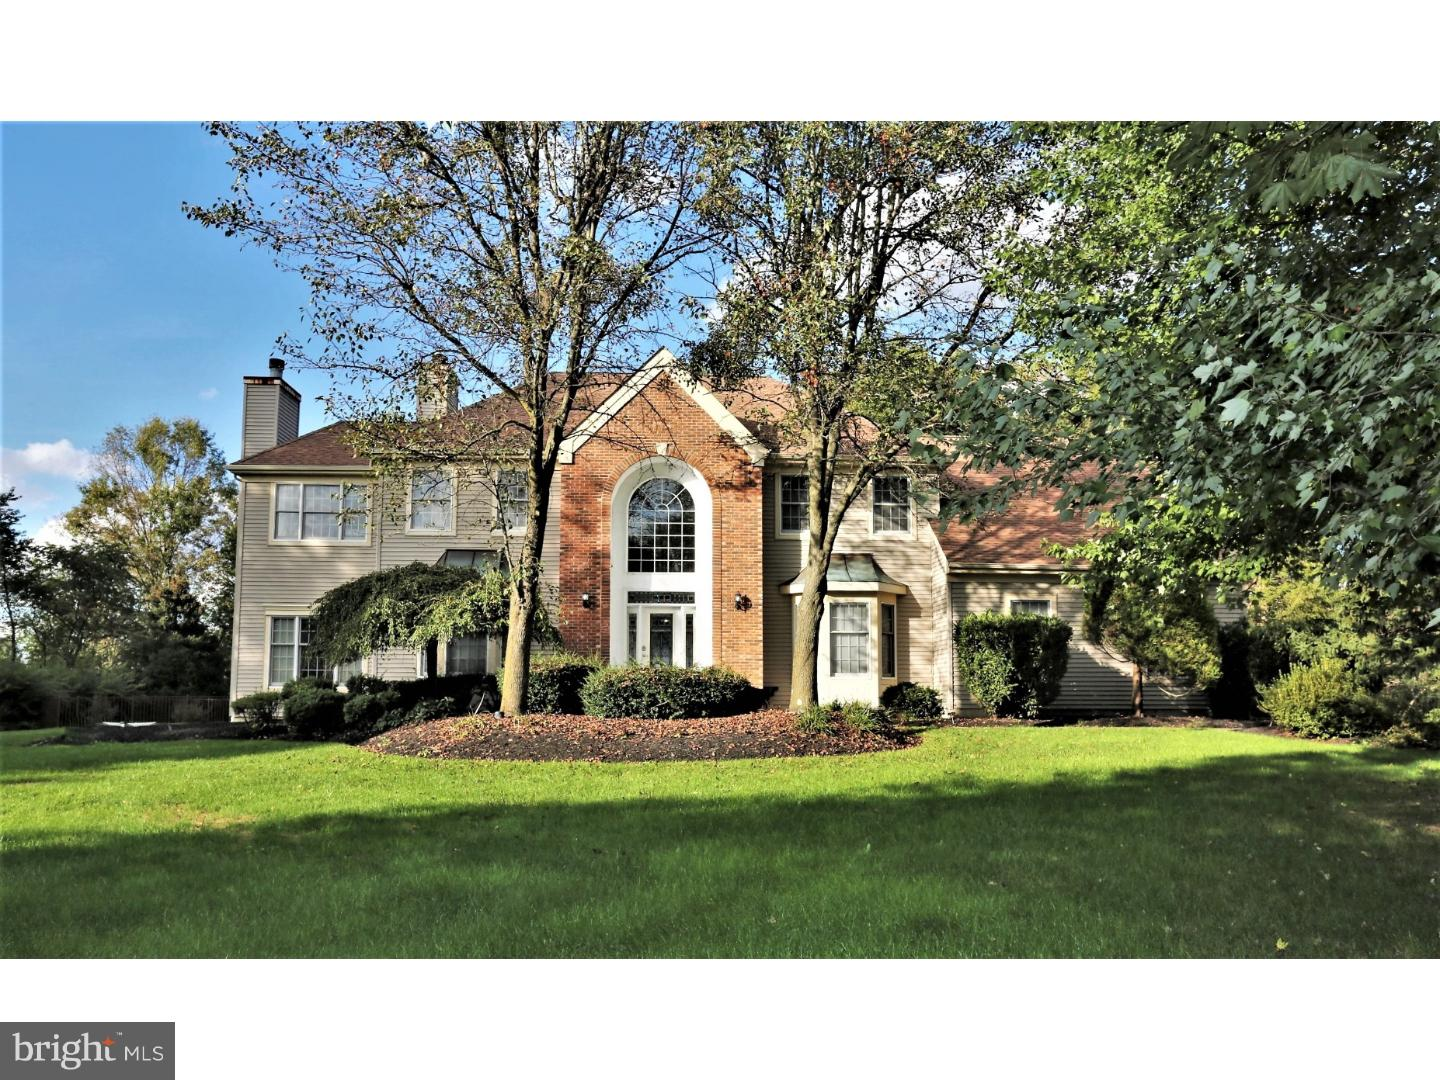 22 BRENTWOOD LANE, CRANBURY, NJ 08512